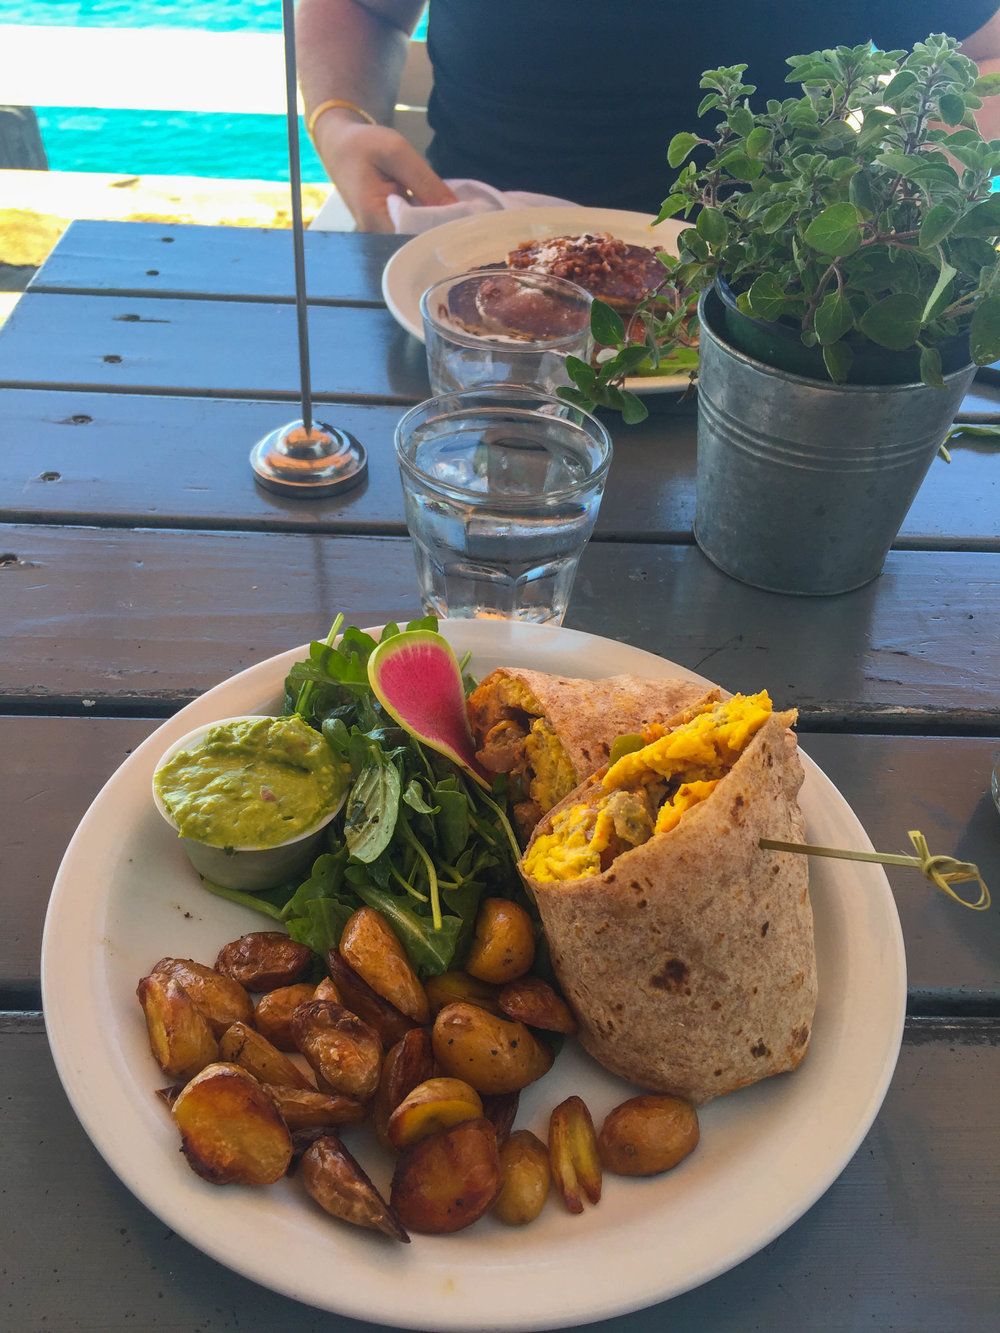 Best Brunch in Los Angeles - Malibu pier Cafe